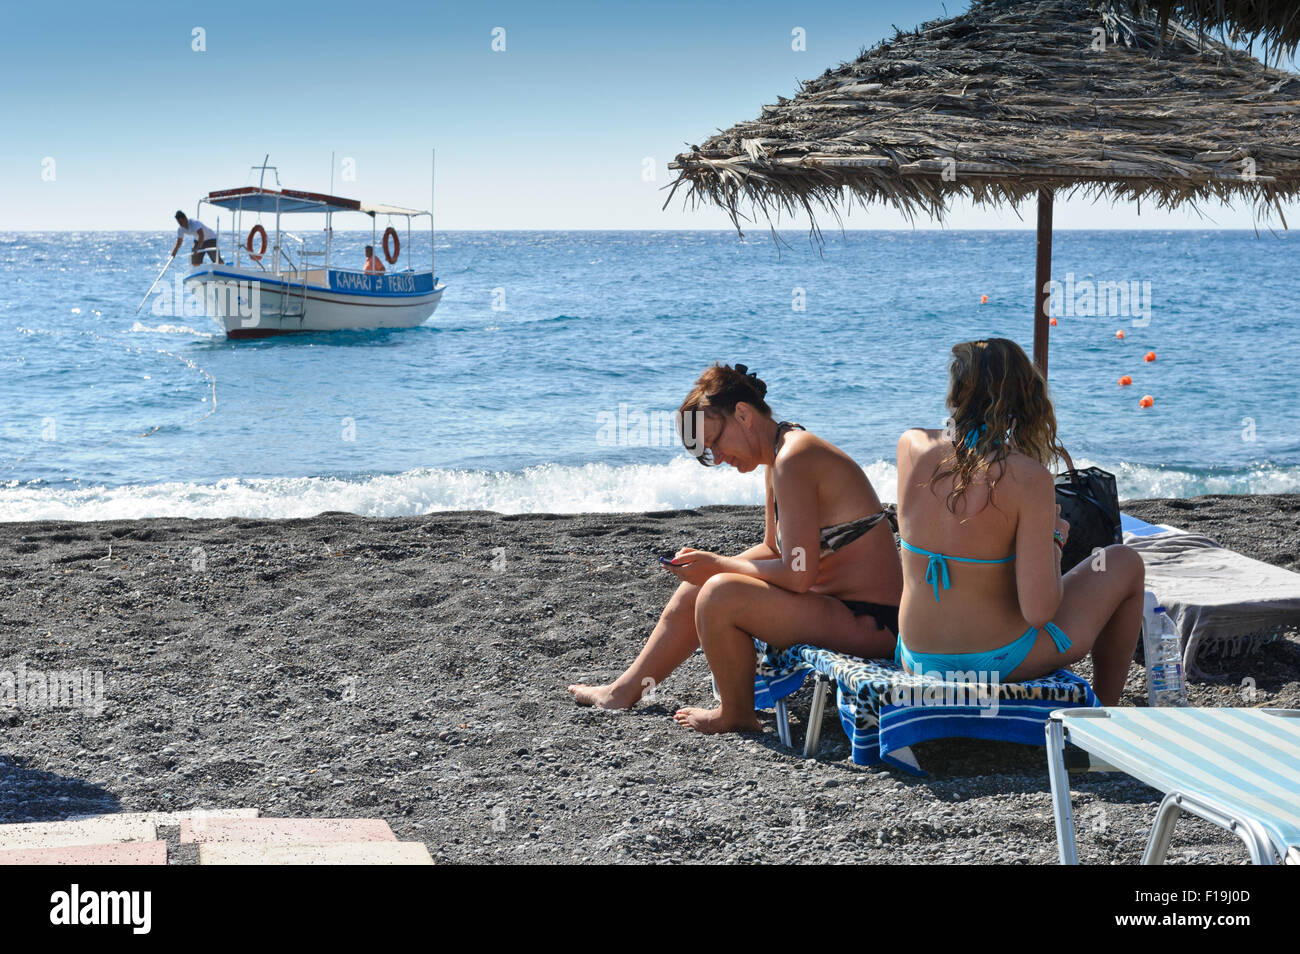 Two female sunbathers under a straw umbrella while a small boat approaching the beach in Kamari, Santorini, Greece. - Stock Image